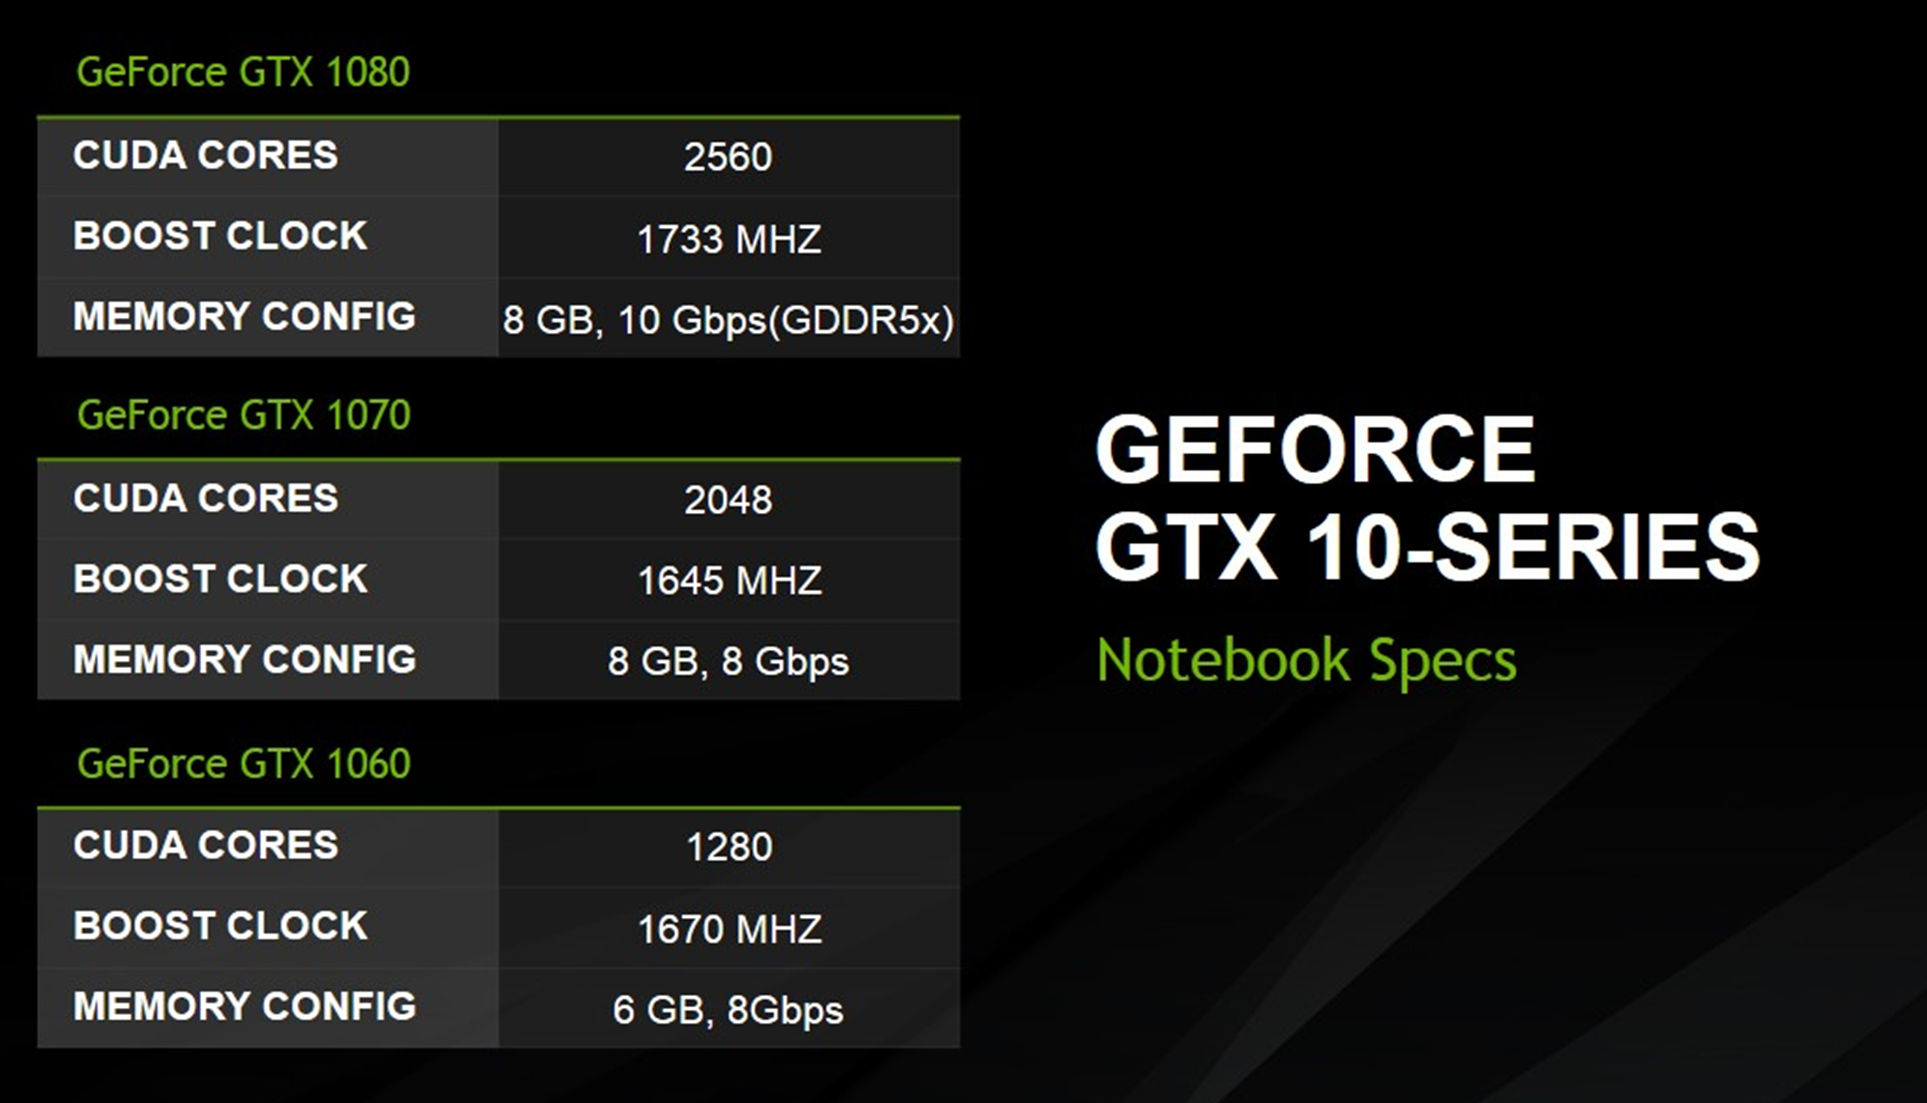 Nvidia's GeForce GTX 1080, 1070 and 1060 for laptops break the